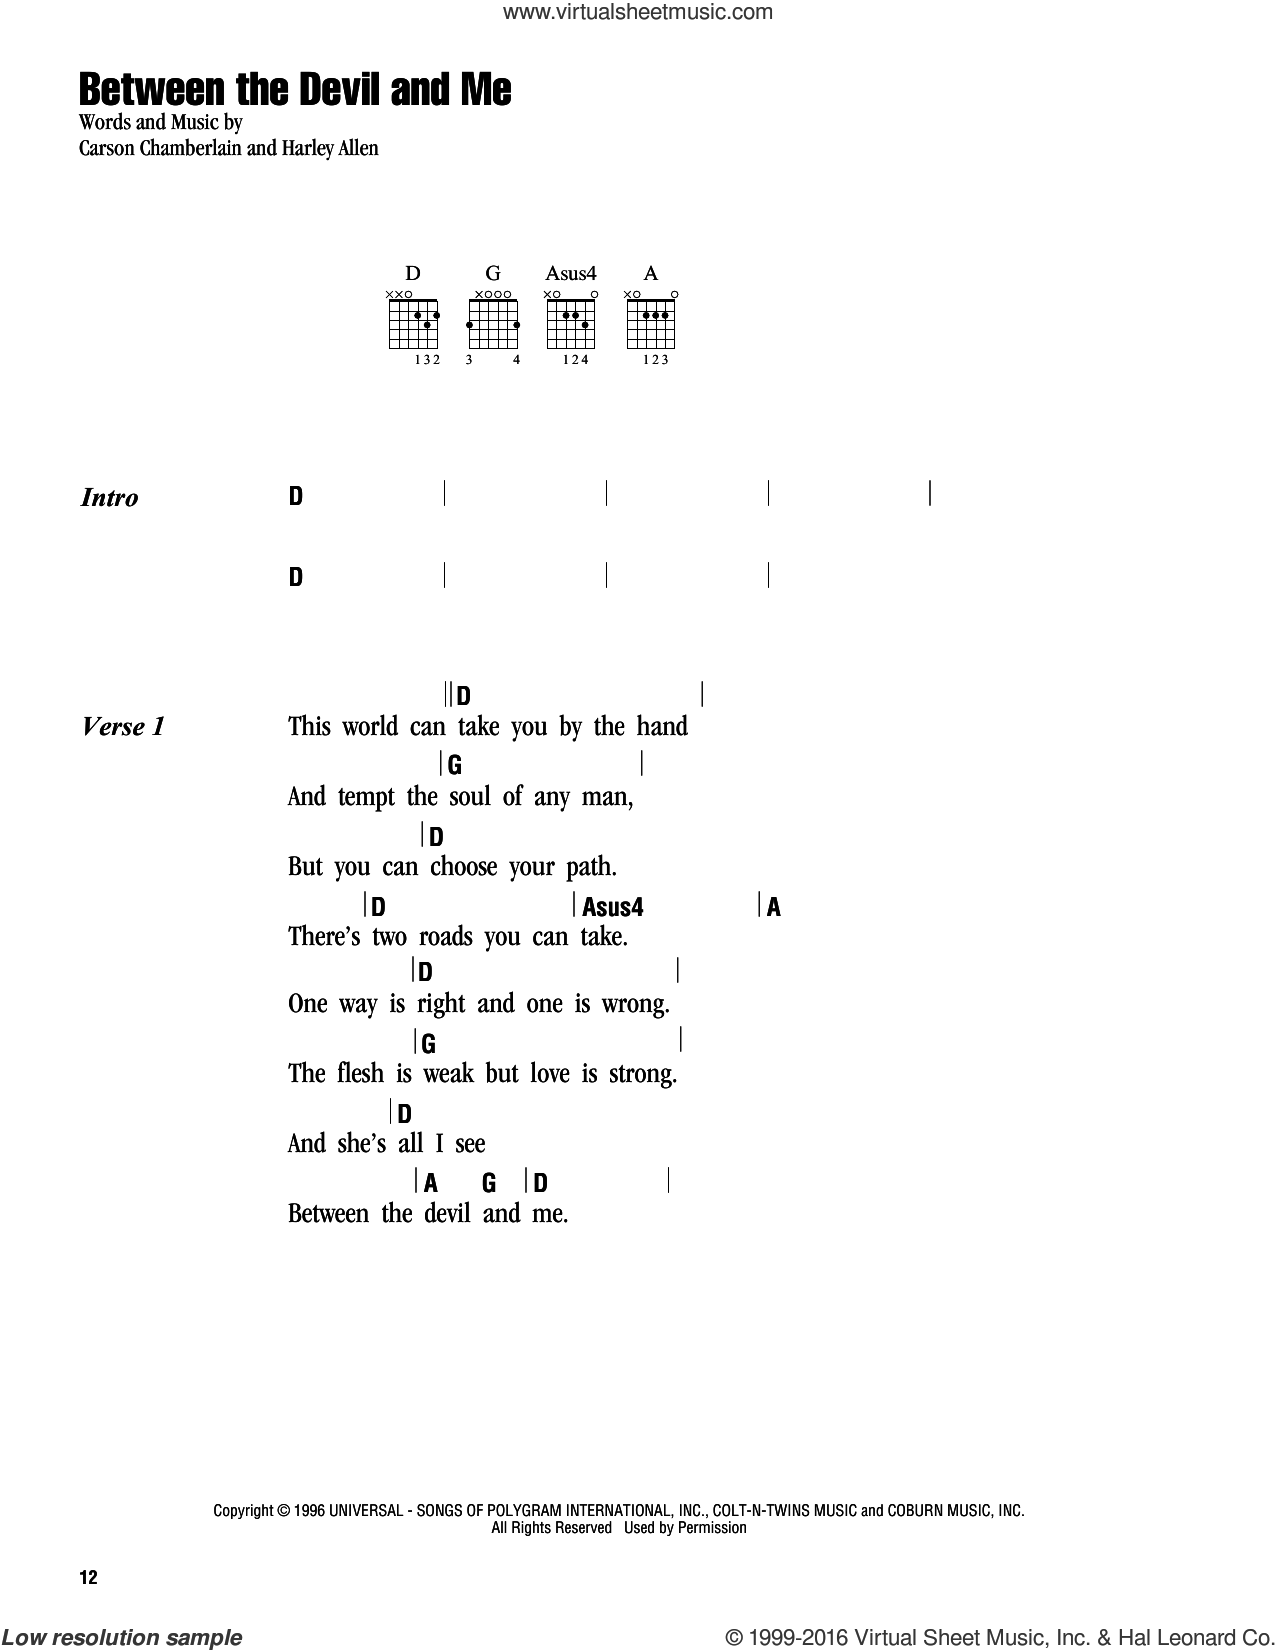 Between The Devil And Me sheet music for guitar (chords) by Harley Allen, Alan Jackson and Carson Chamberlain. Score Image Preview.